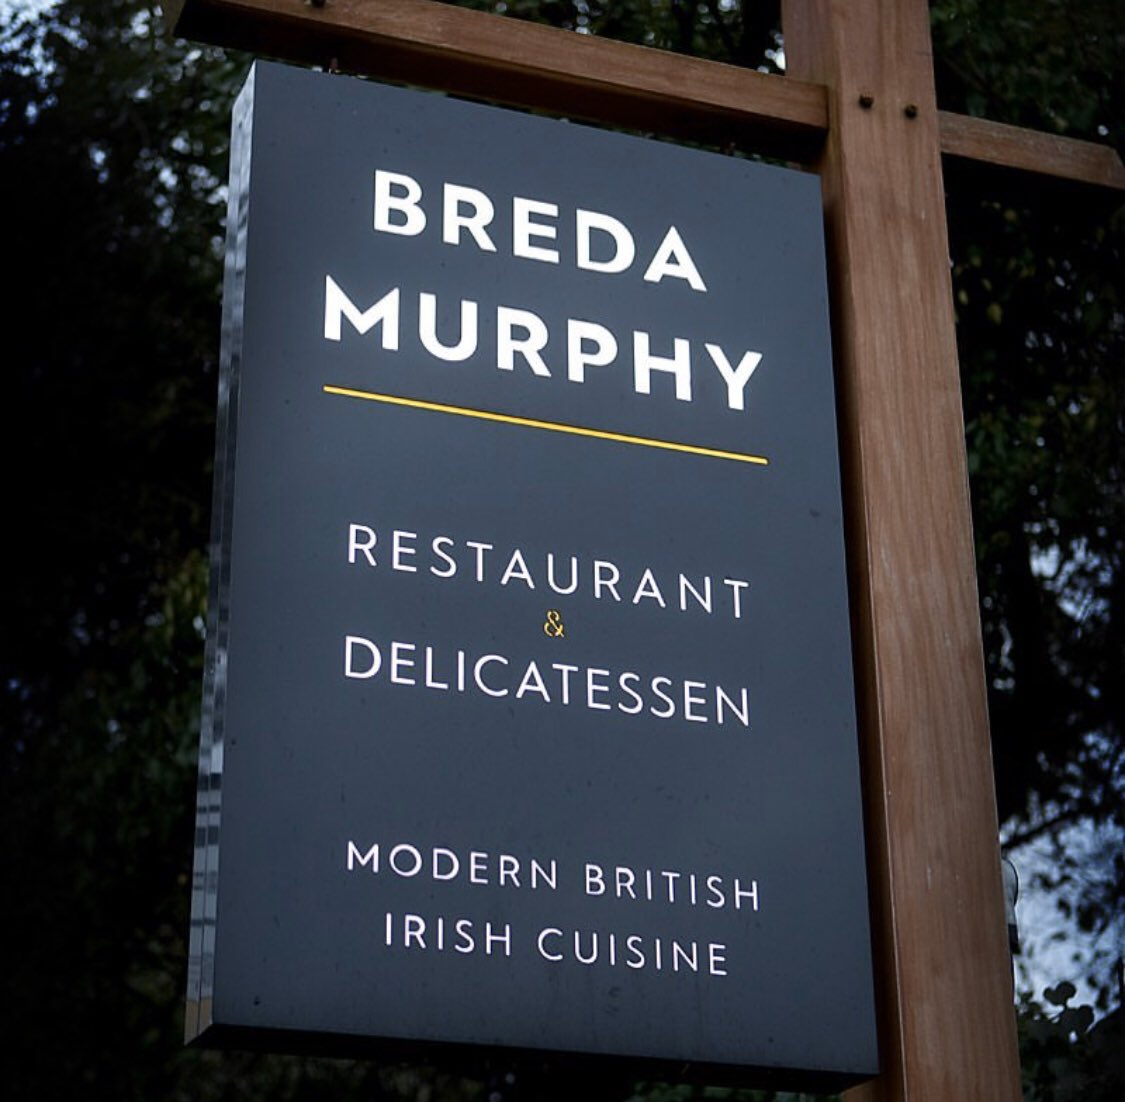 """""""EXCELLENT, PROFESSIONAL, FRIENDLY SERVICE AND BEAUTIFUL FOOD WITH TOP MARKS FOR PRESENTATION!"""" ResDiary Review 12th Oct 2019. Open today Sun 13th OCT tables from 9.30am till 2.30pm breakfast and lunch. Tel 01254 823446 #sundaylunch #whalley #foodbybredamurphy<br>http://pic.twitter.com/lx6p8SDXtG"""